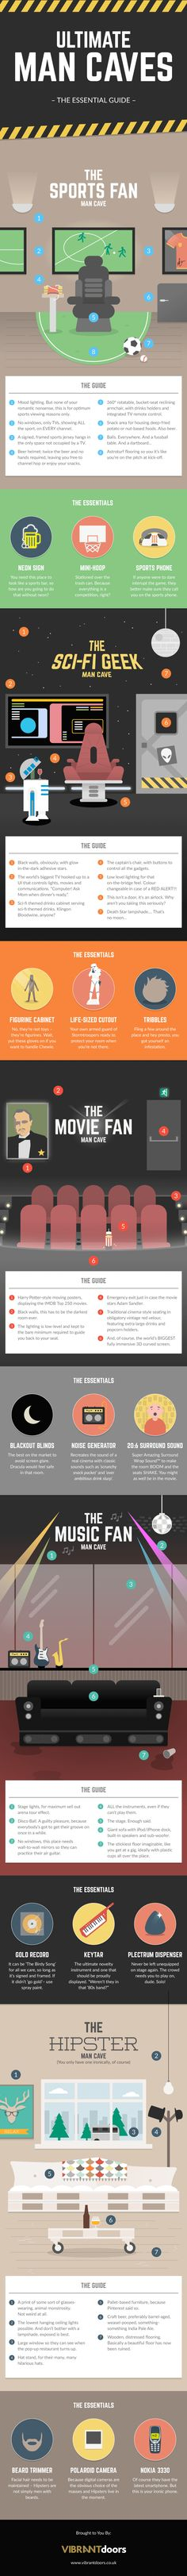 Ultimate Man Caves, The Essential Guide  [by VIBRANTdoors -- via #tipsographic]. More at tipsographic.com